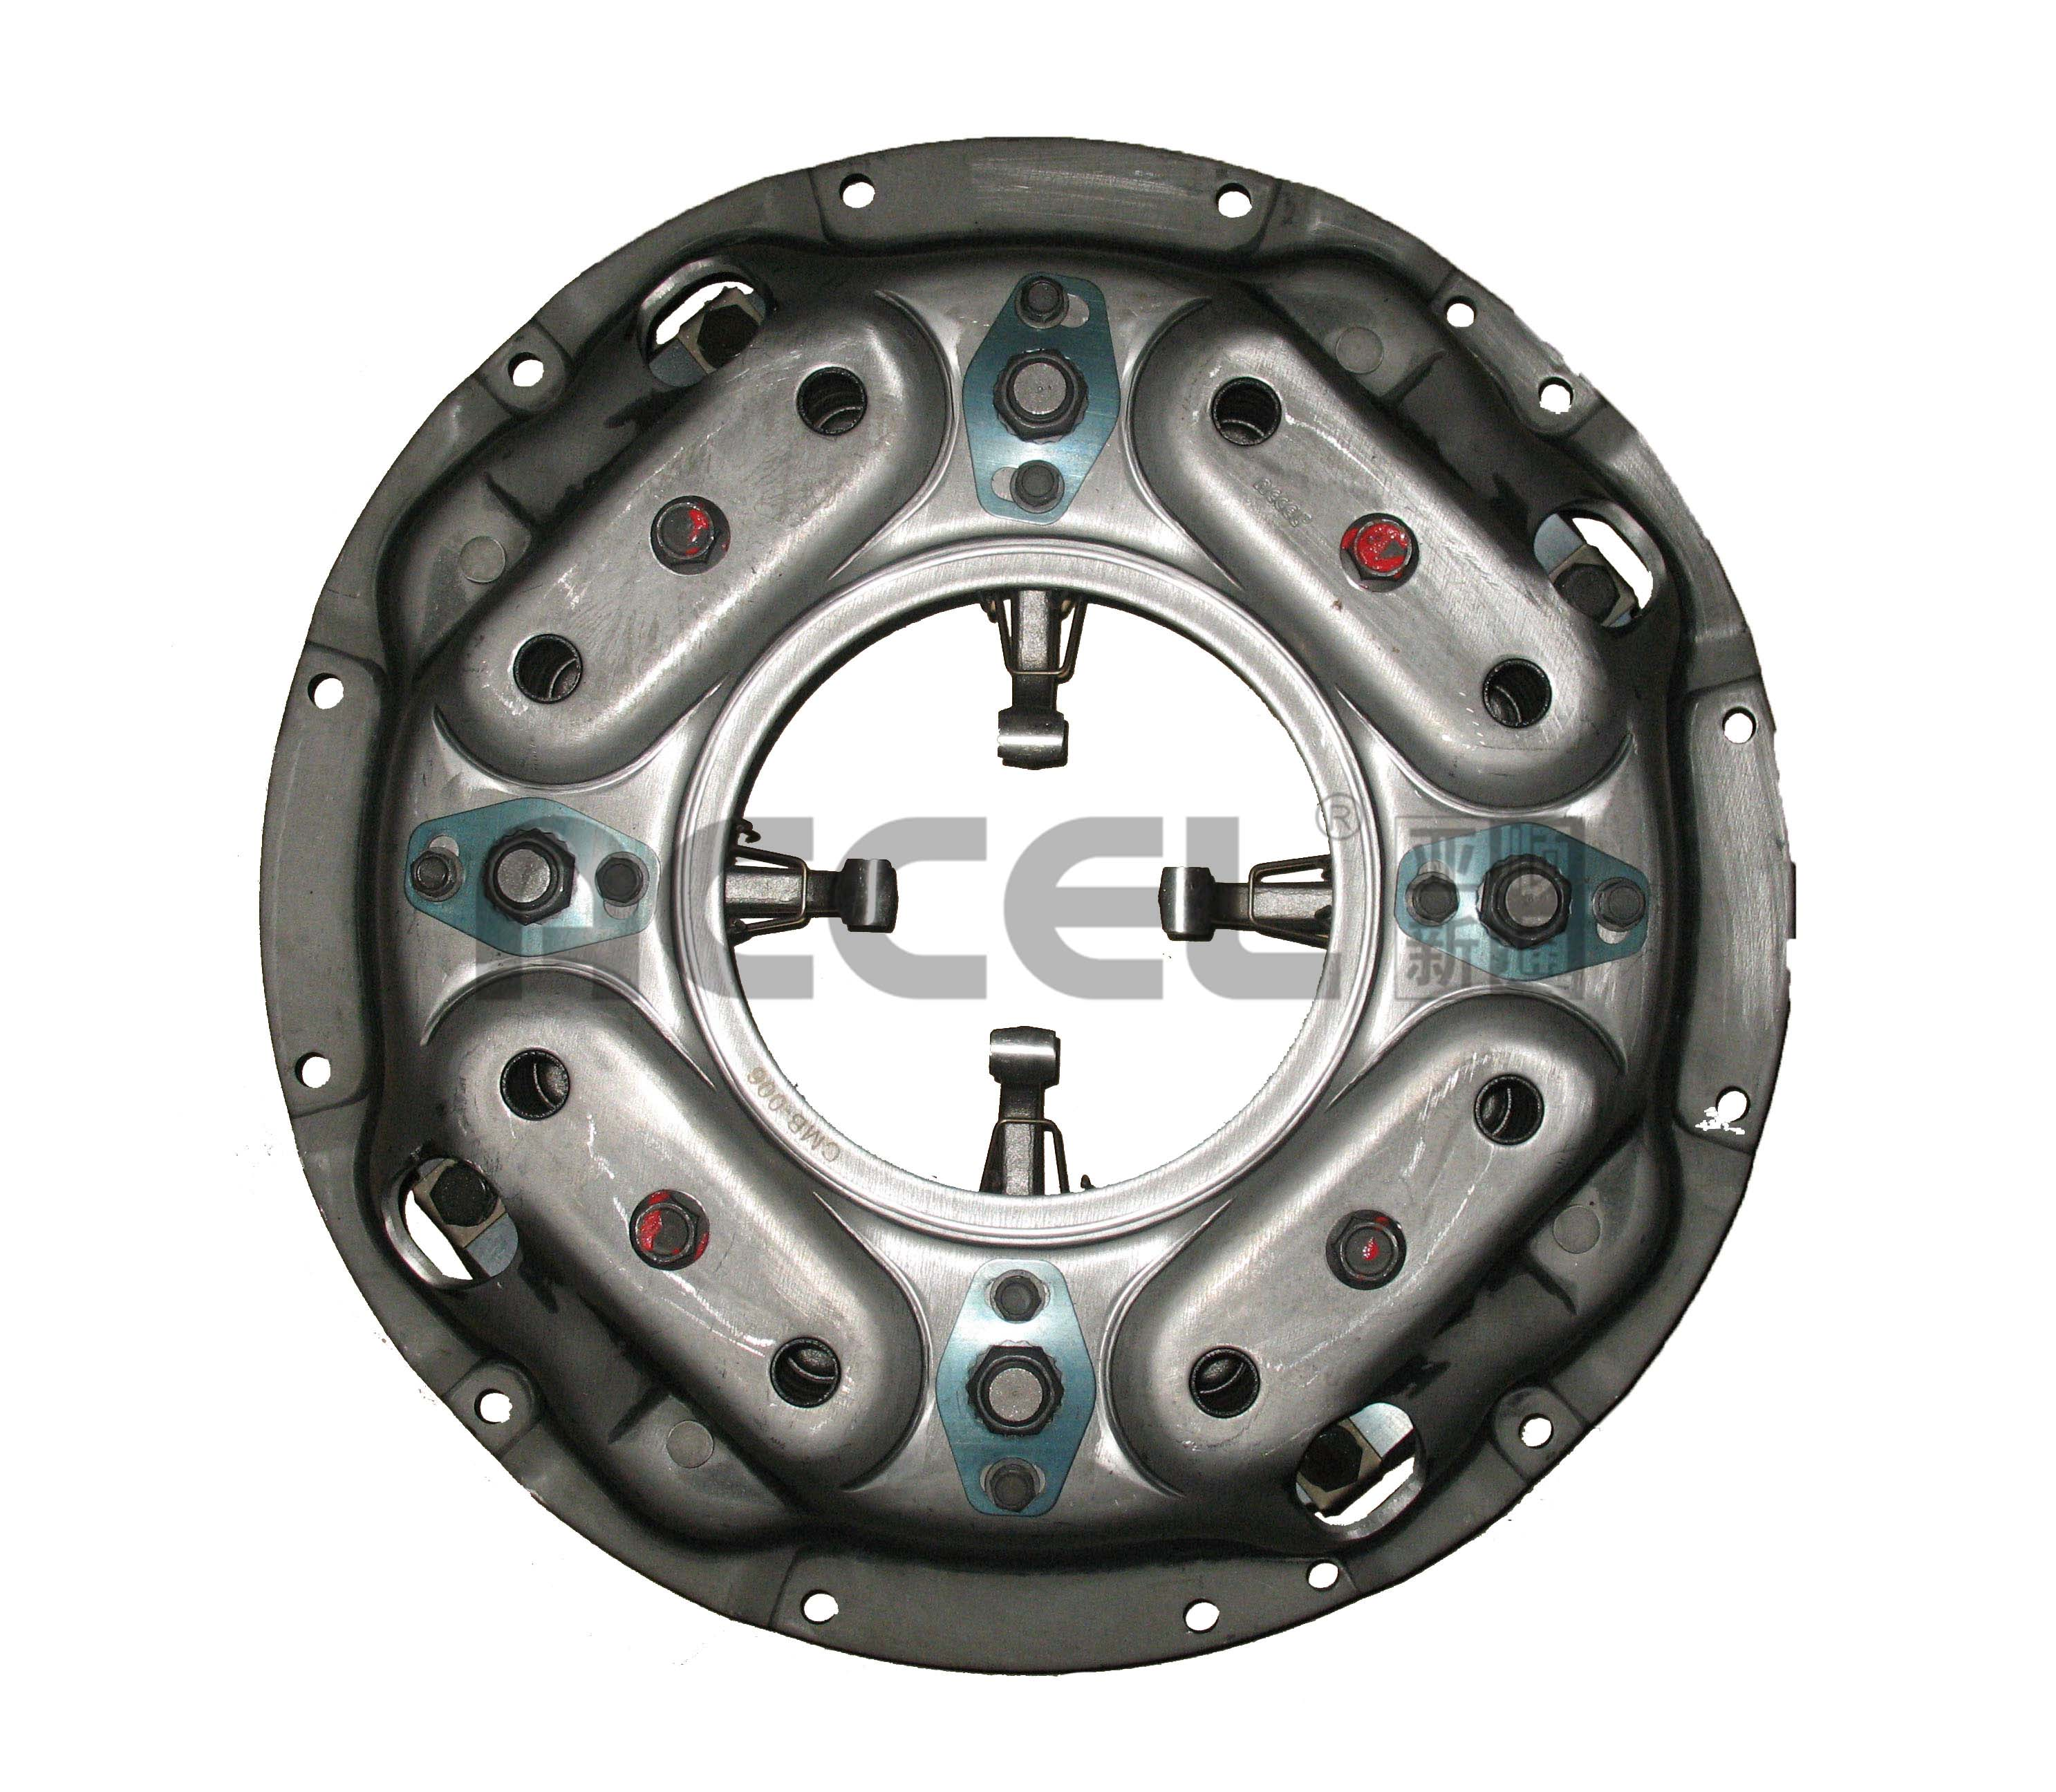 Clutch Cover/OE:94780018/430*250*456/CDW-002/DAEWOO/LY138/ME550475/MFC543/SCAS-141/41200-88100